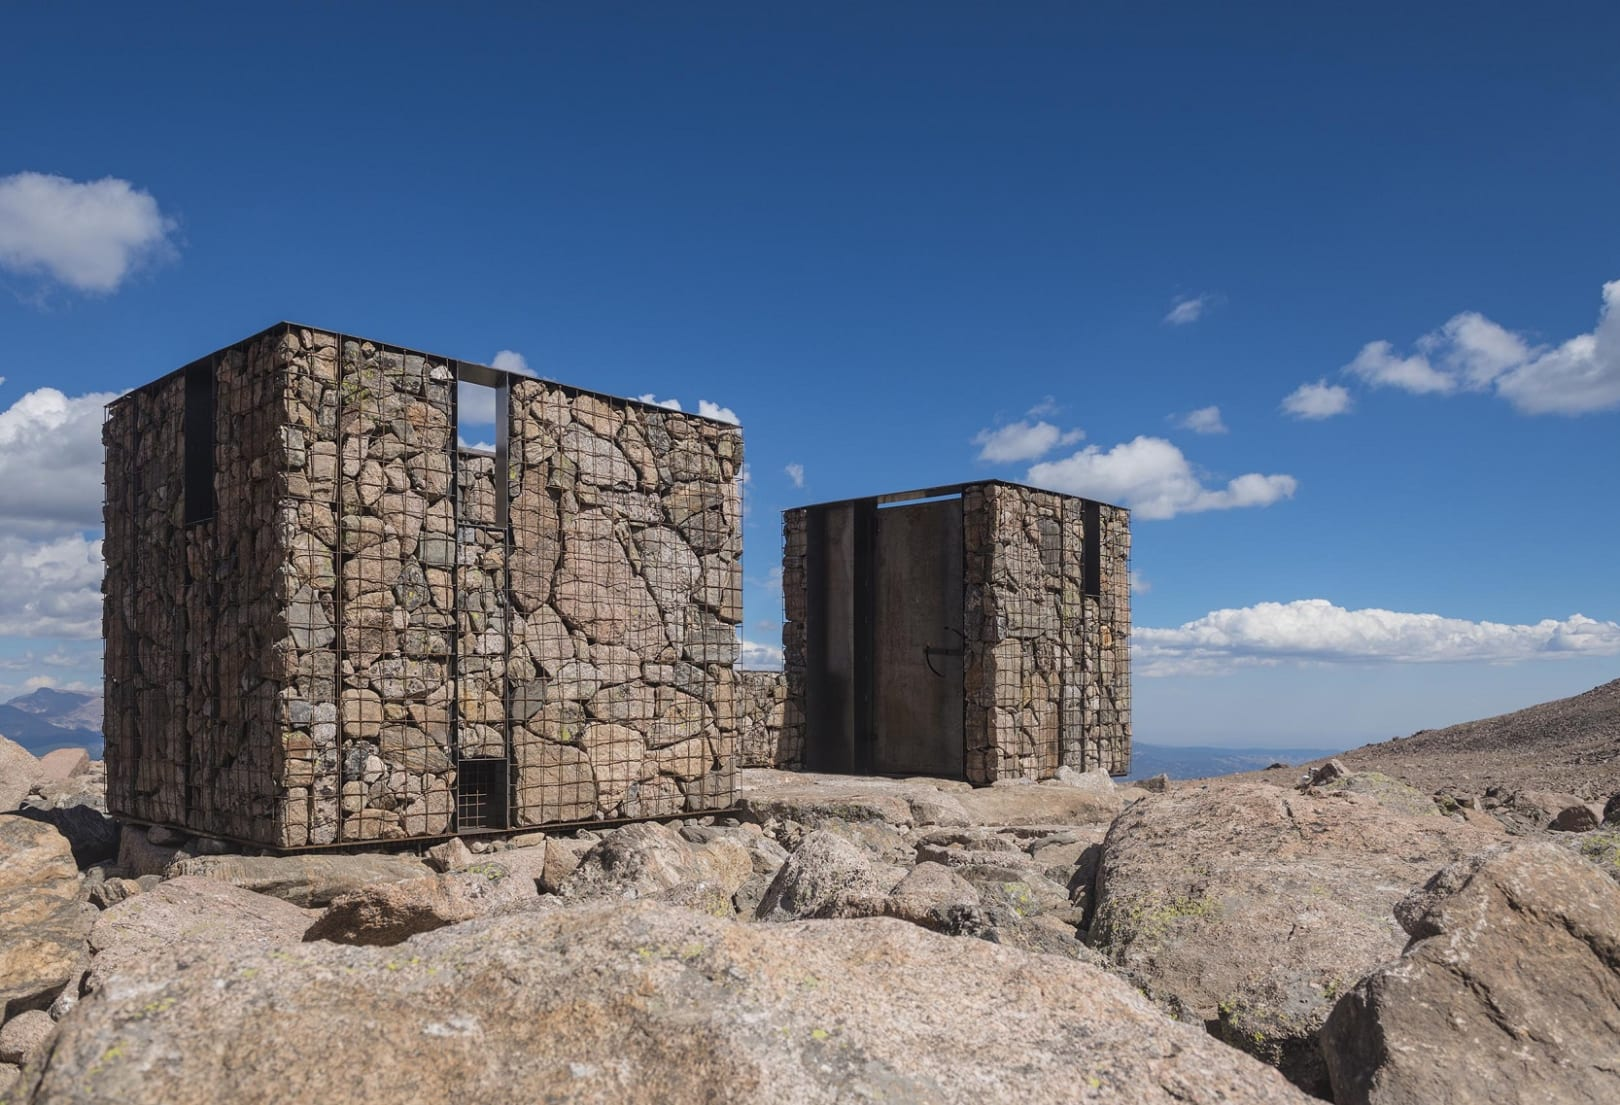 2 cube buildings constructed with rocks on a mountain